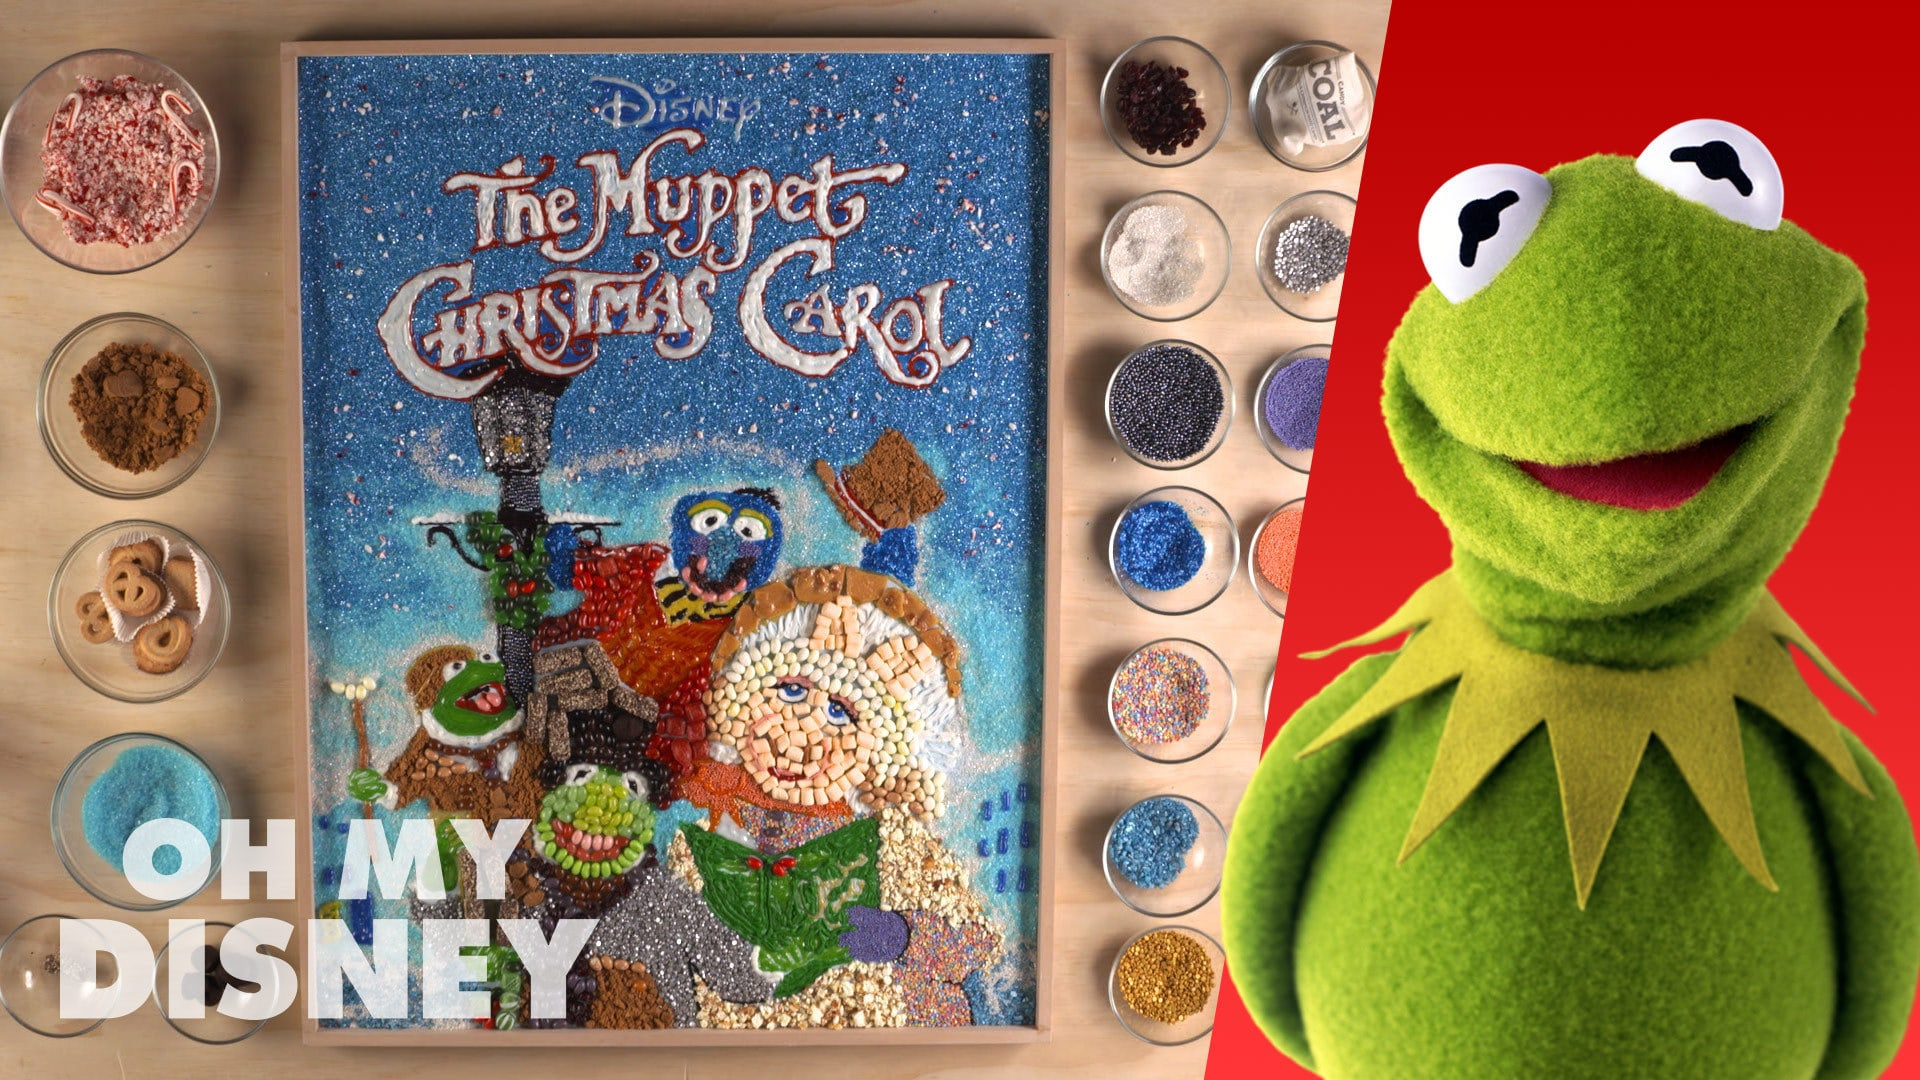 The Muppet Christmas Carol Food Art | Sketchbook by Oh My Disney